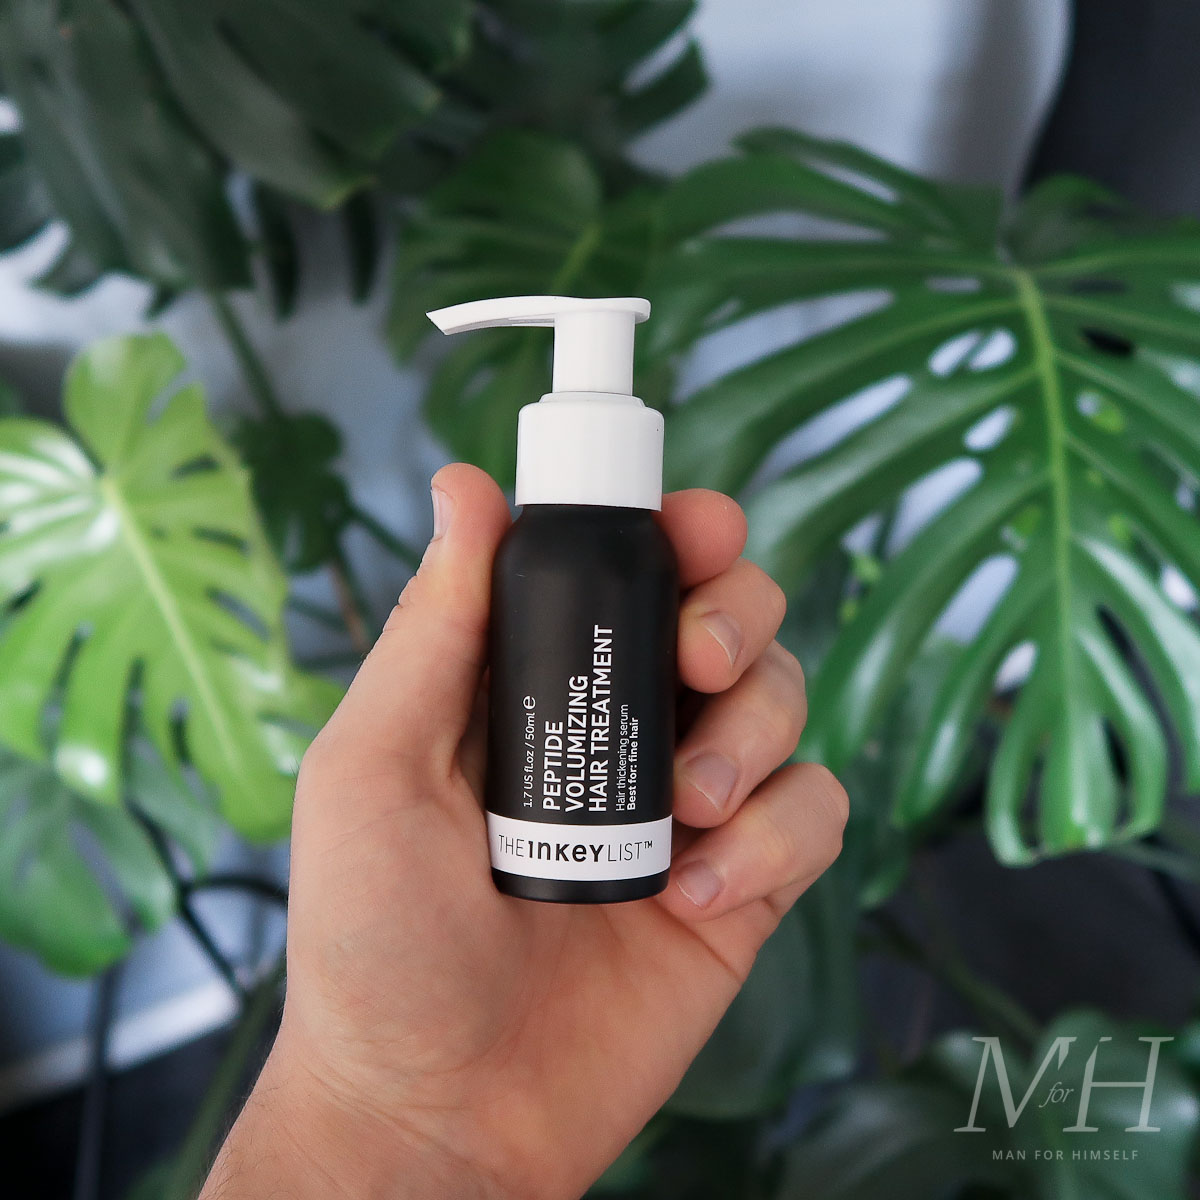 the-inkey-list-volumizing-hair-treatment-product-review-man-for-himself